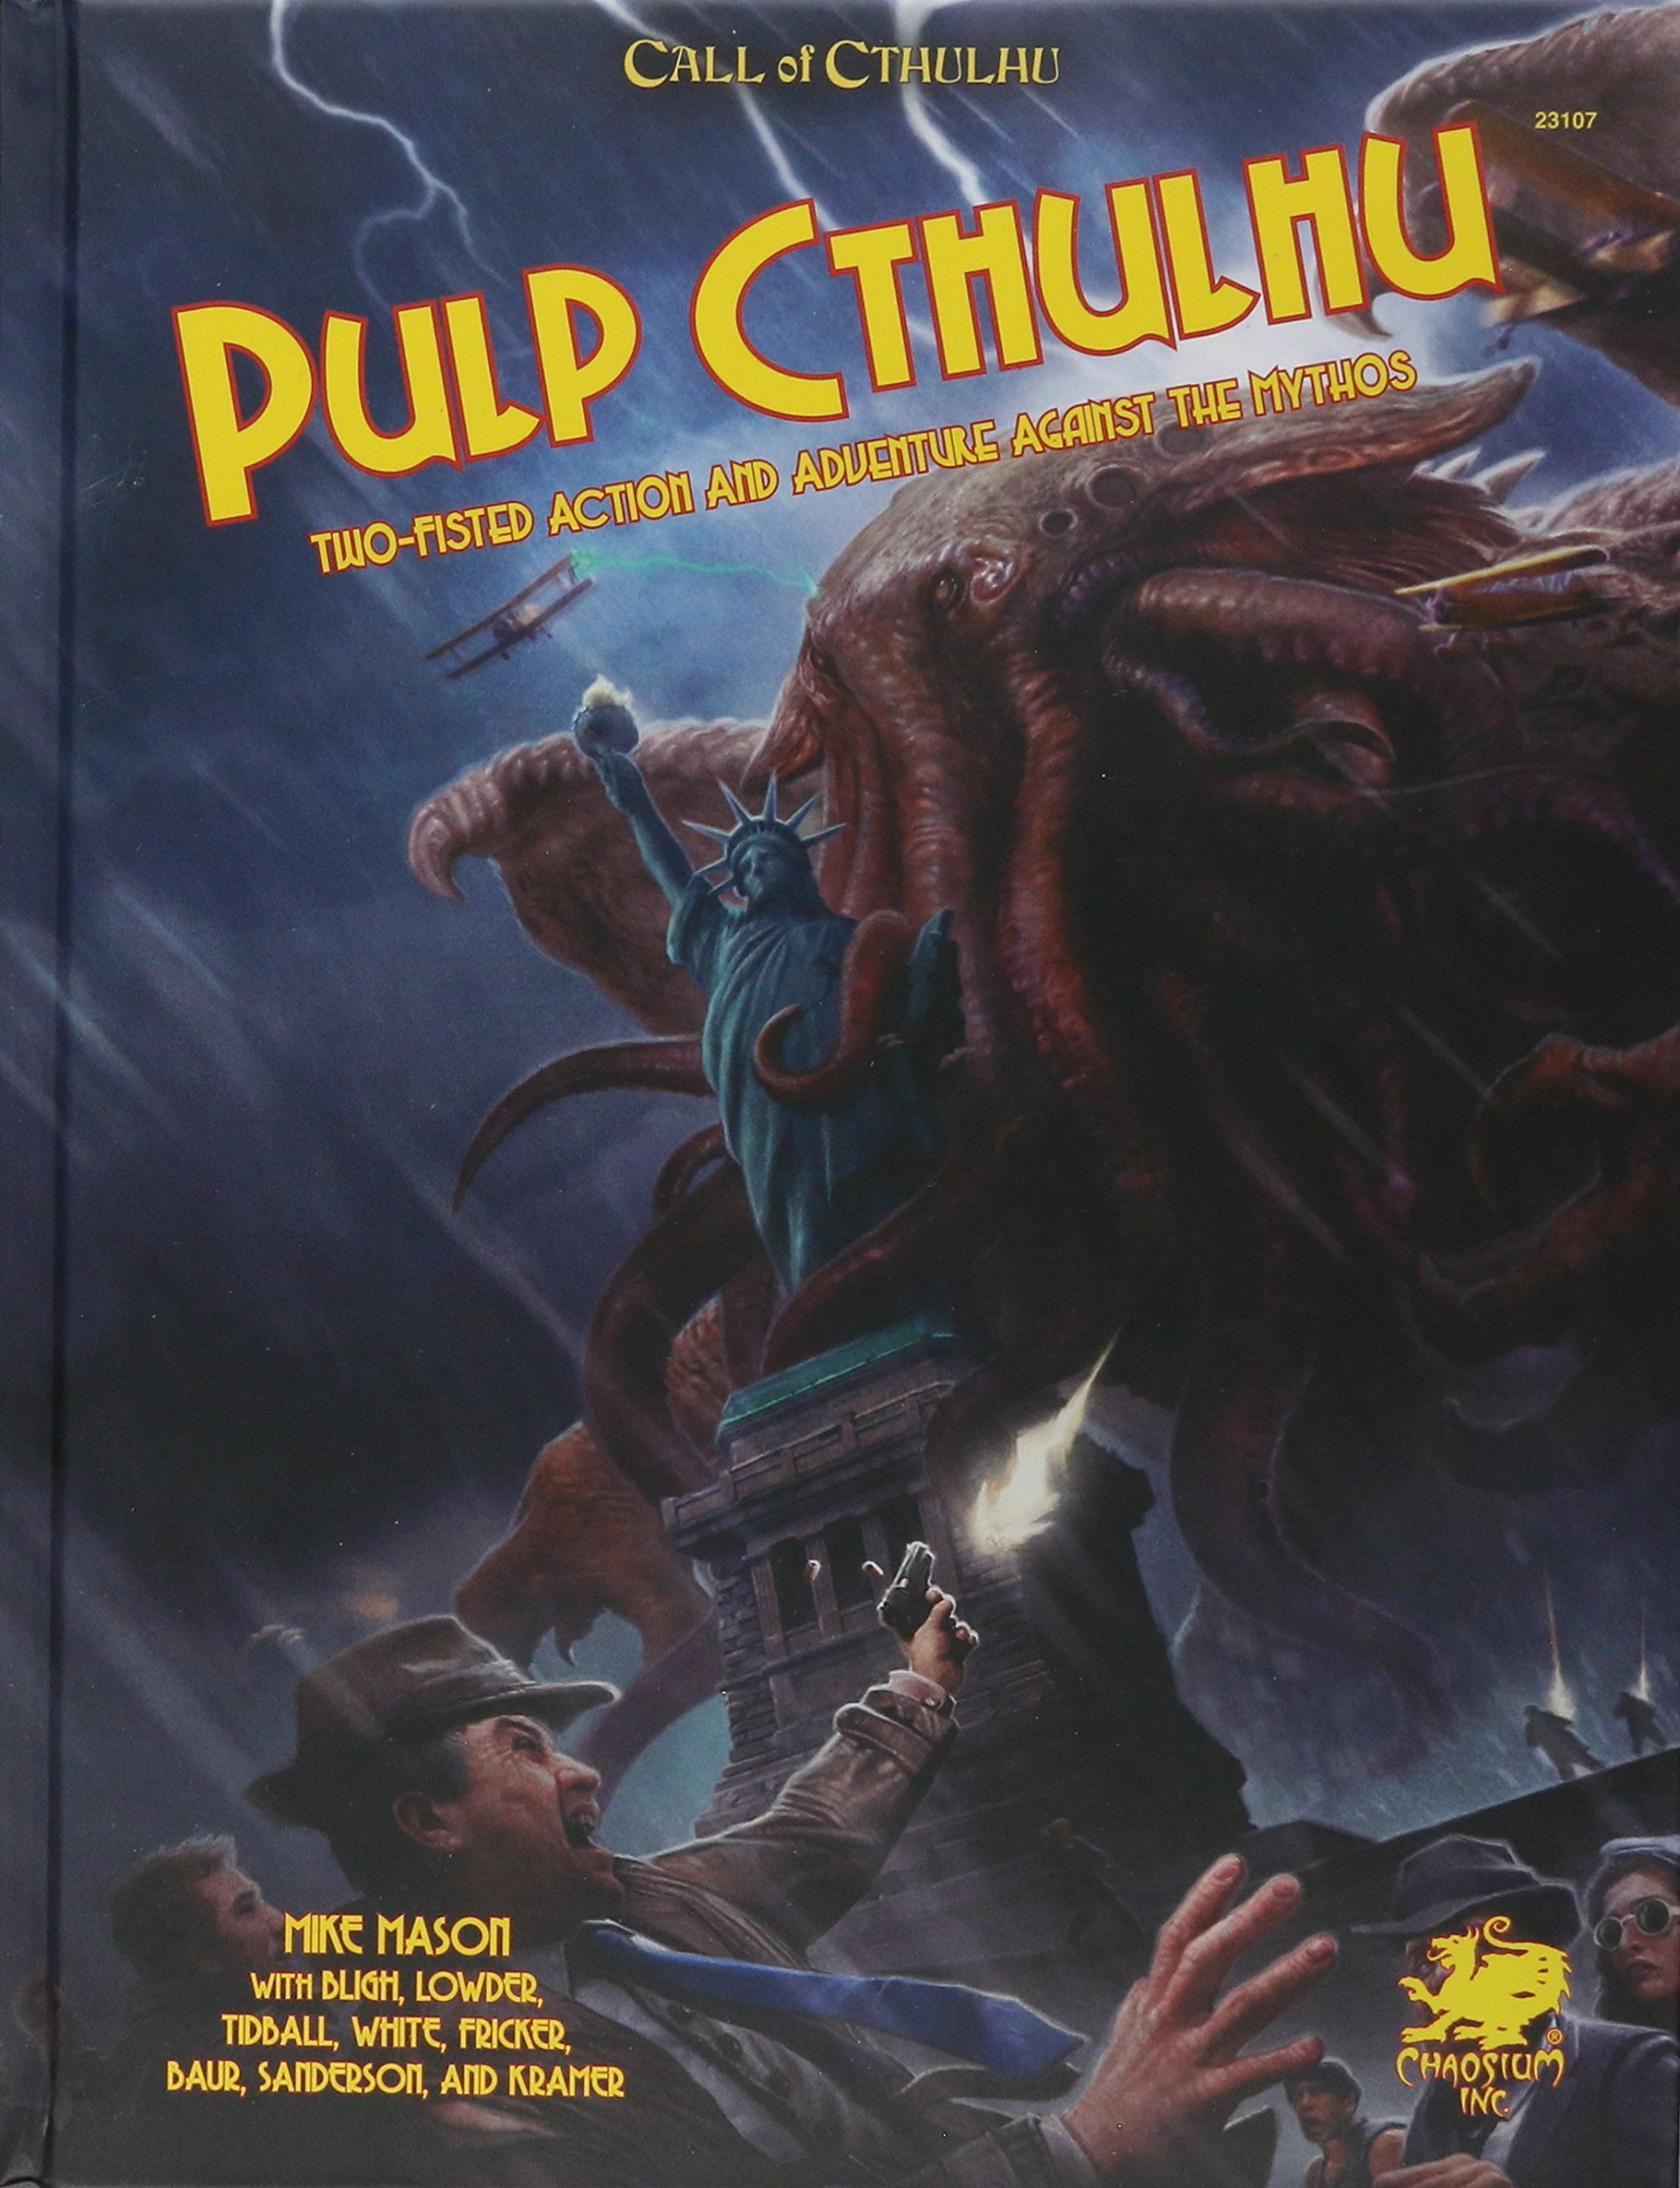 Pulp Cthulhu (Call of Cthulhu Roleplaying): Two Fisted